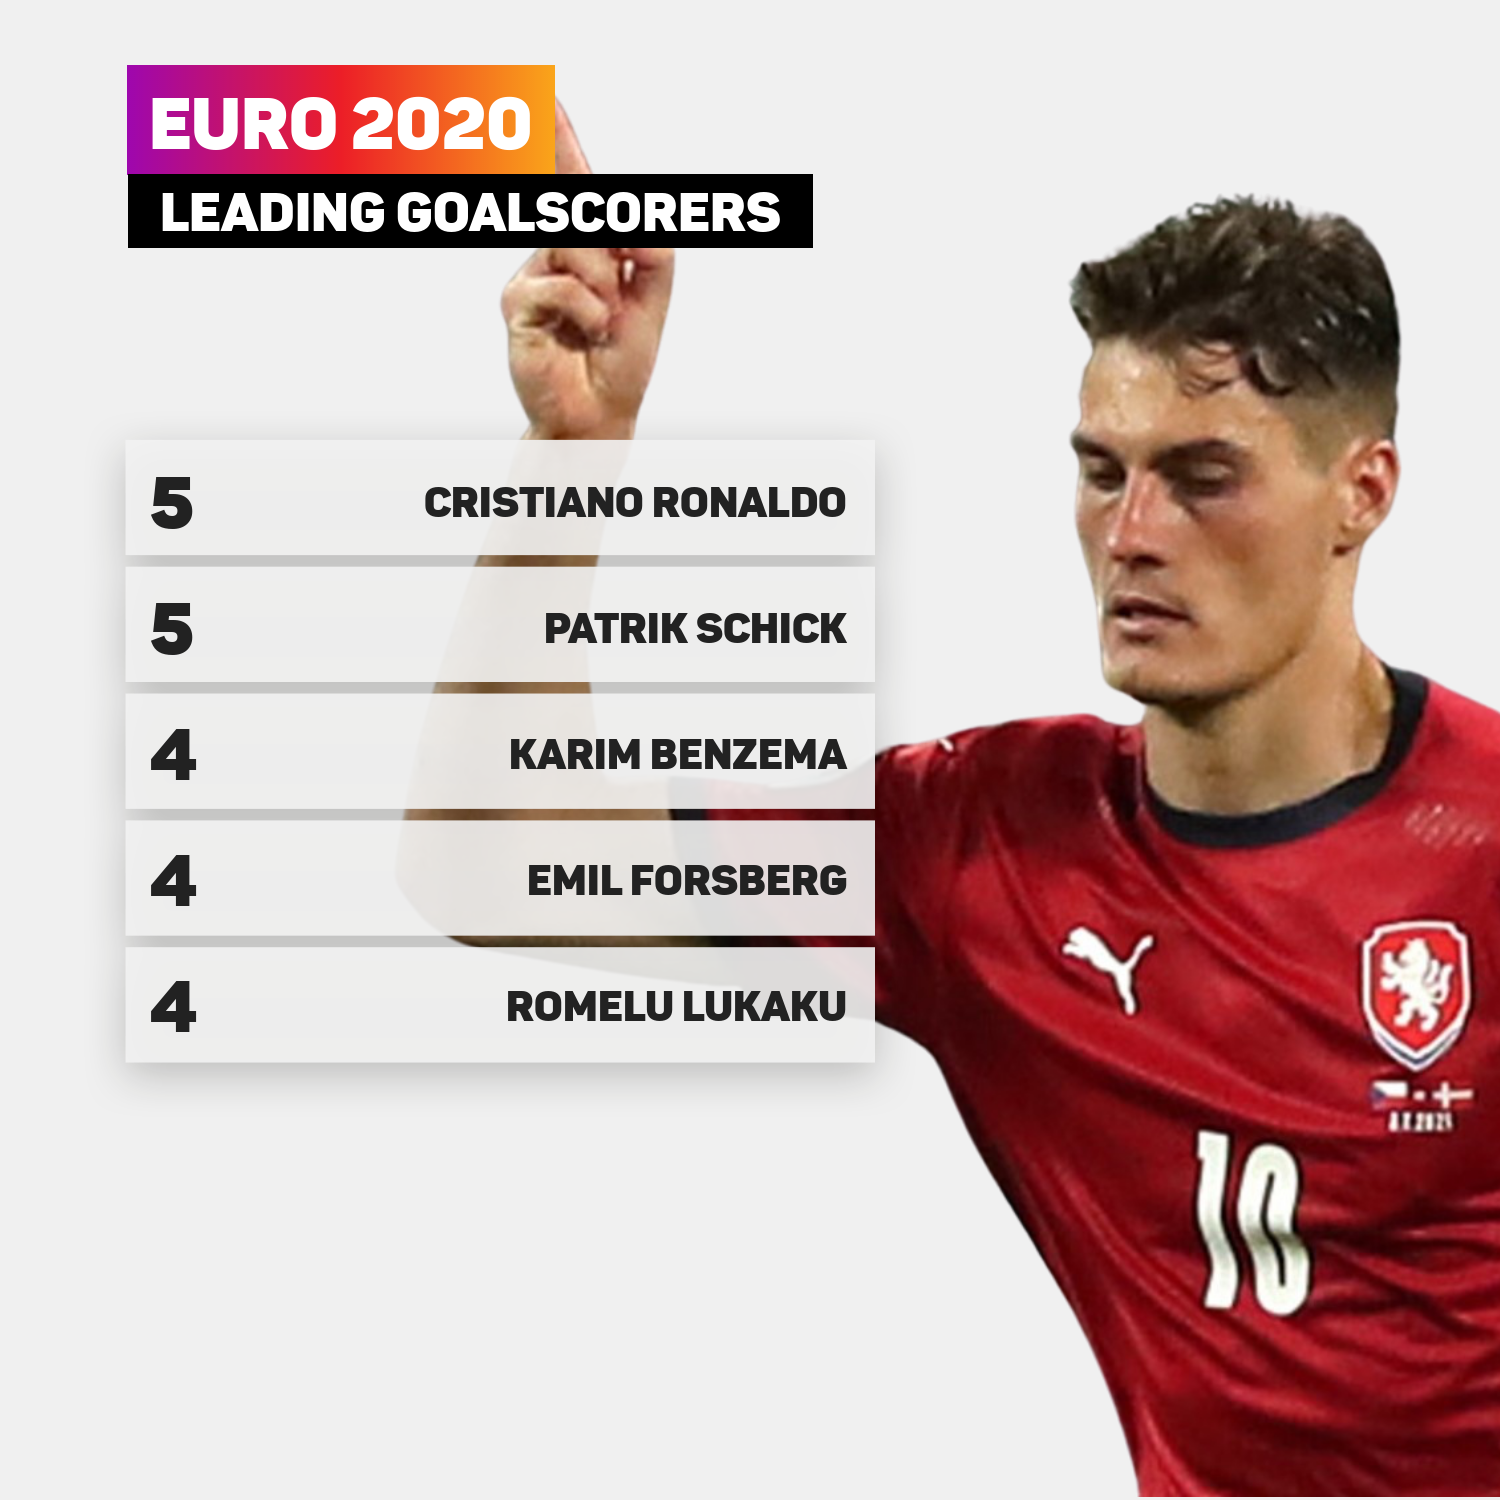 Patrik Schick is the joint-leader in the golden boot race